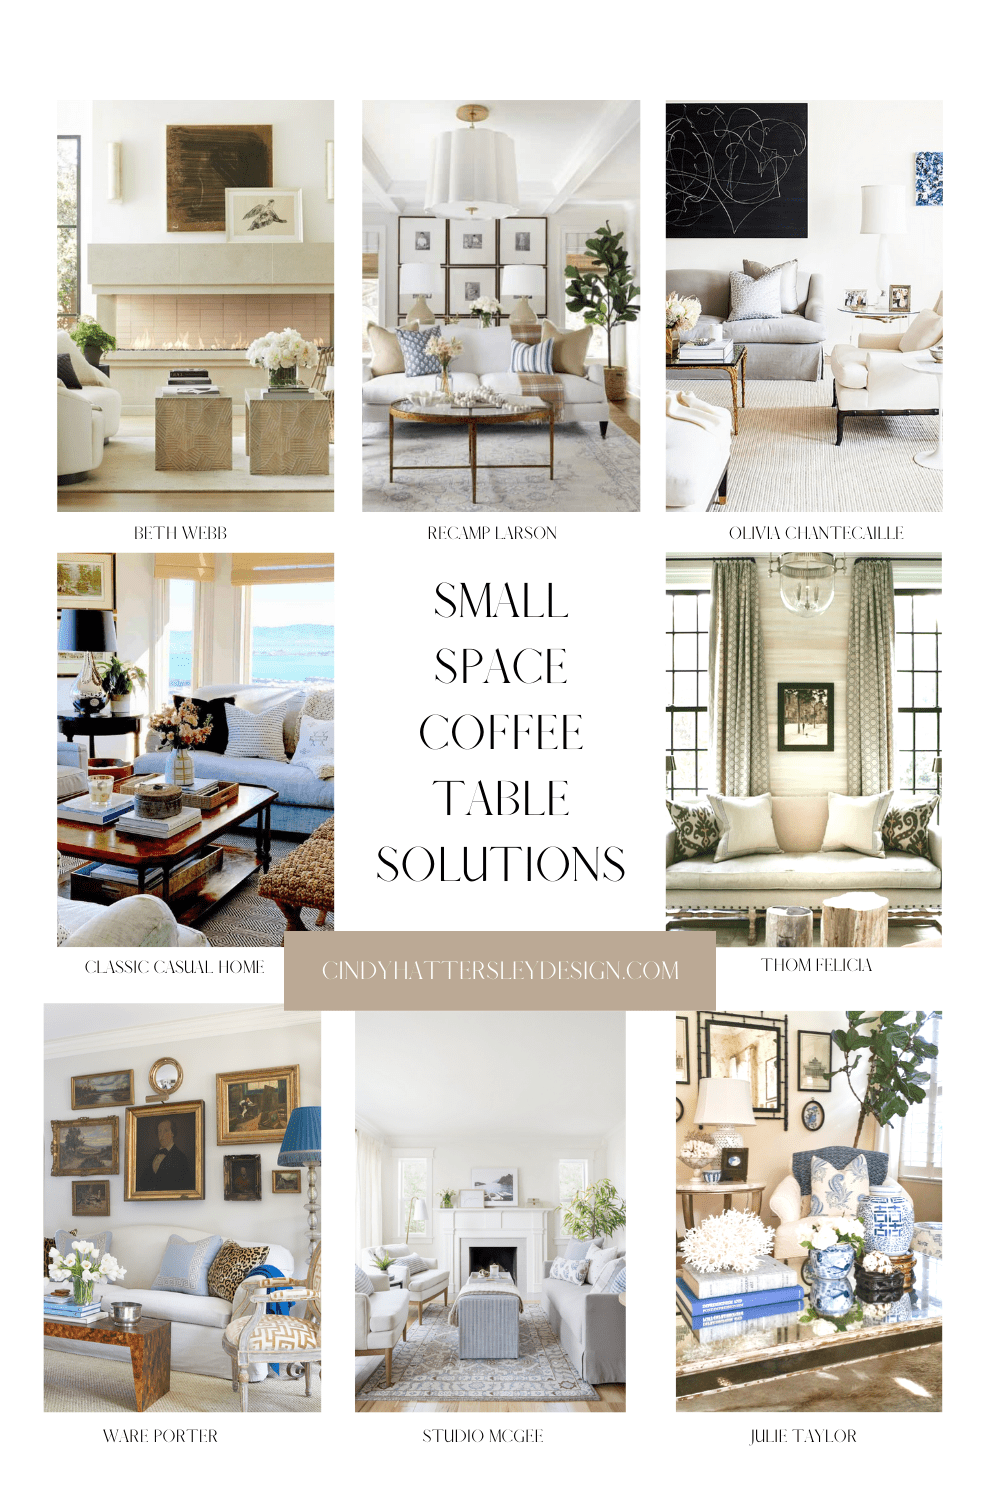 SMALL COFFEE TABLE SOLUTIONS from Cindy Hattersley